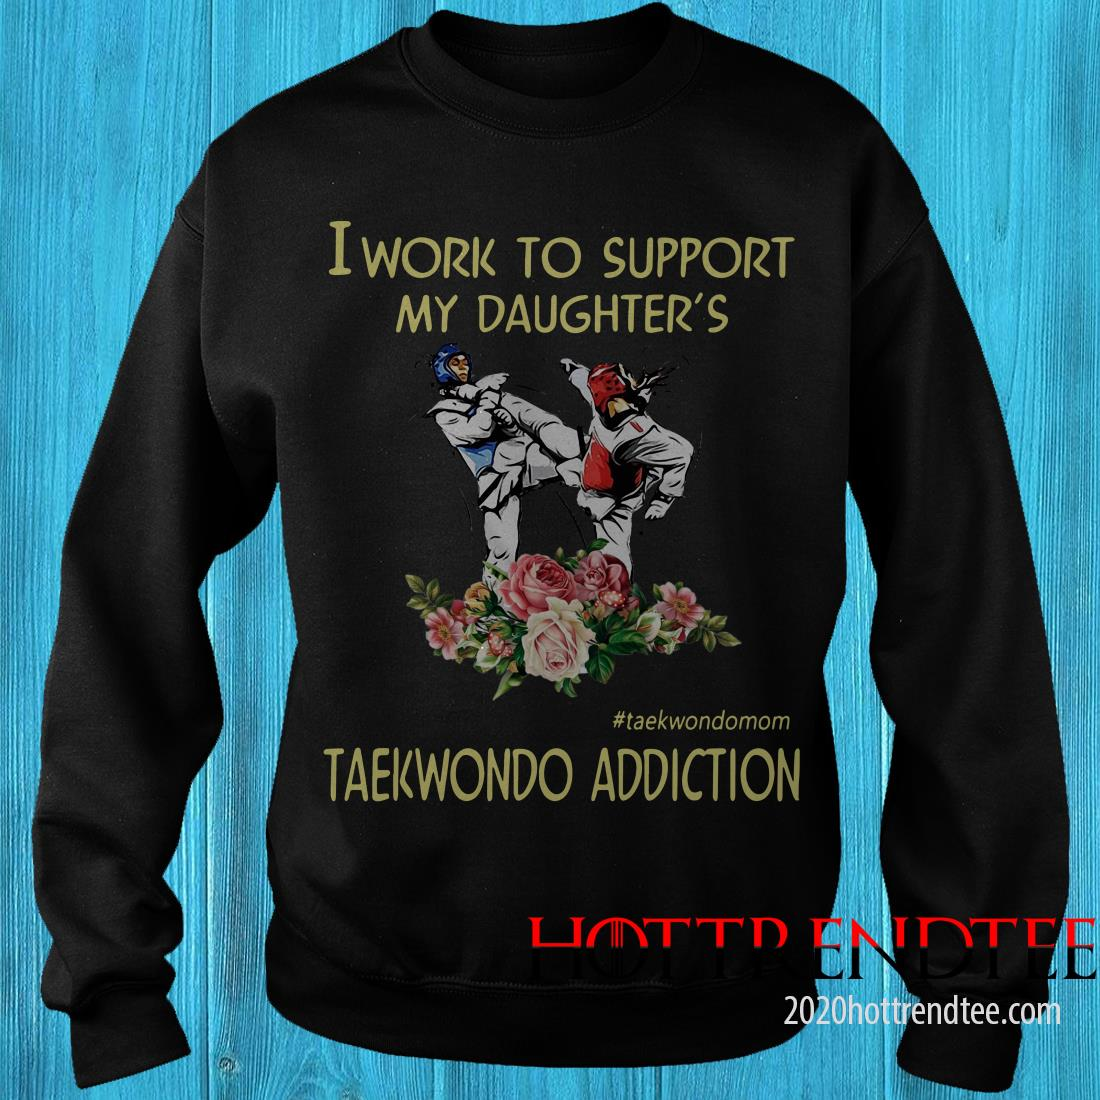 I Work To Support My Daughter's #Taekwondomom Taekwondo Addiction Shirt